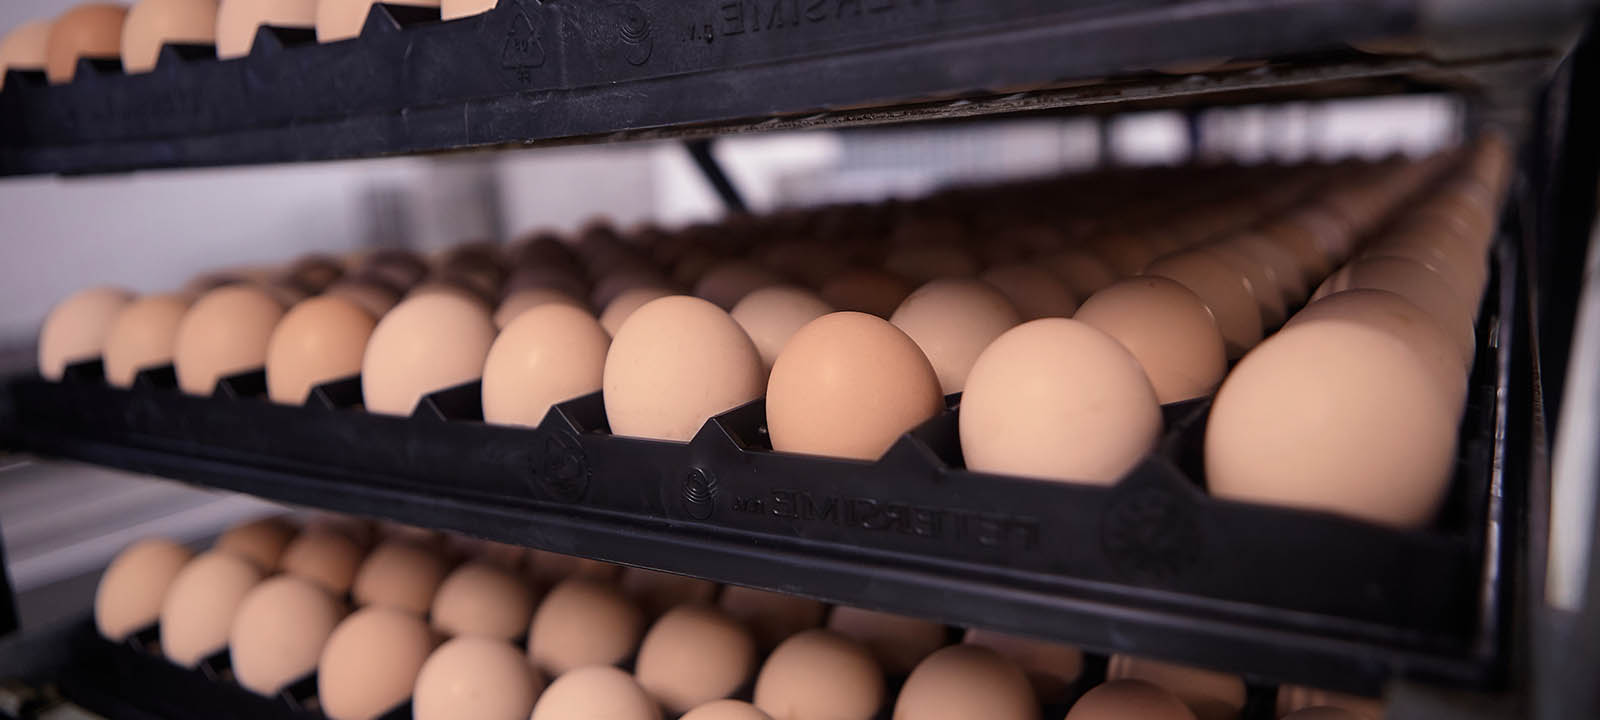 Export of eggs